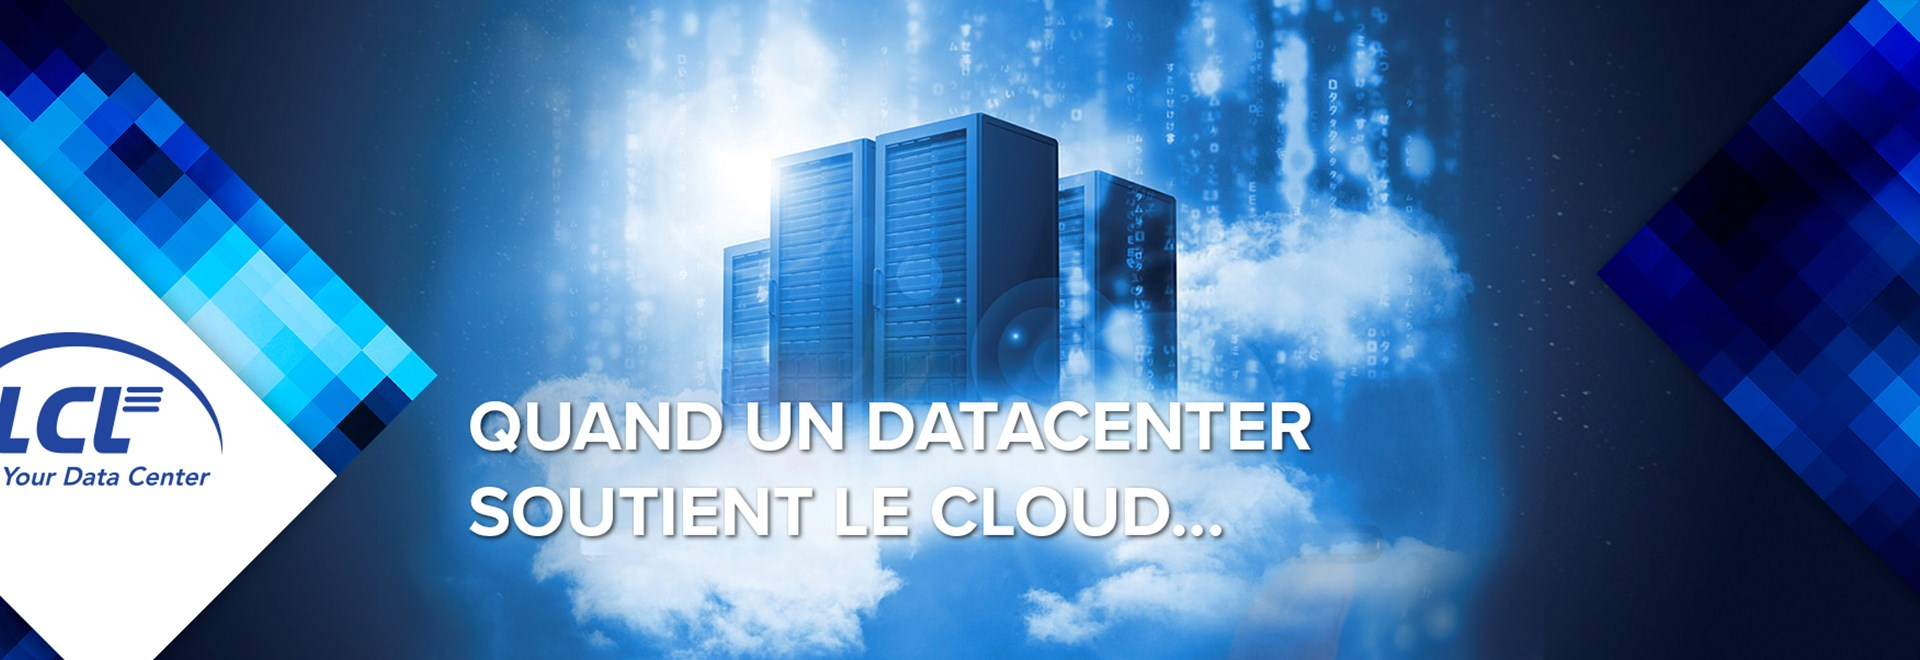 Why would a data center promote the cloud?